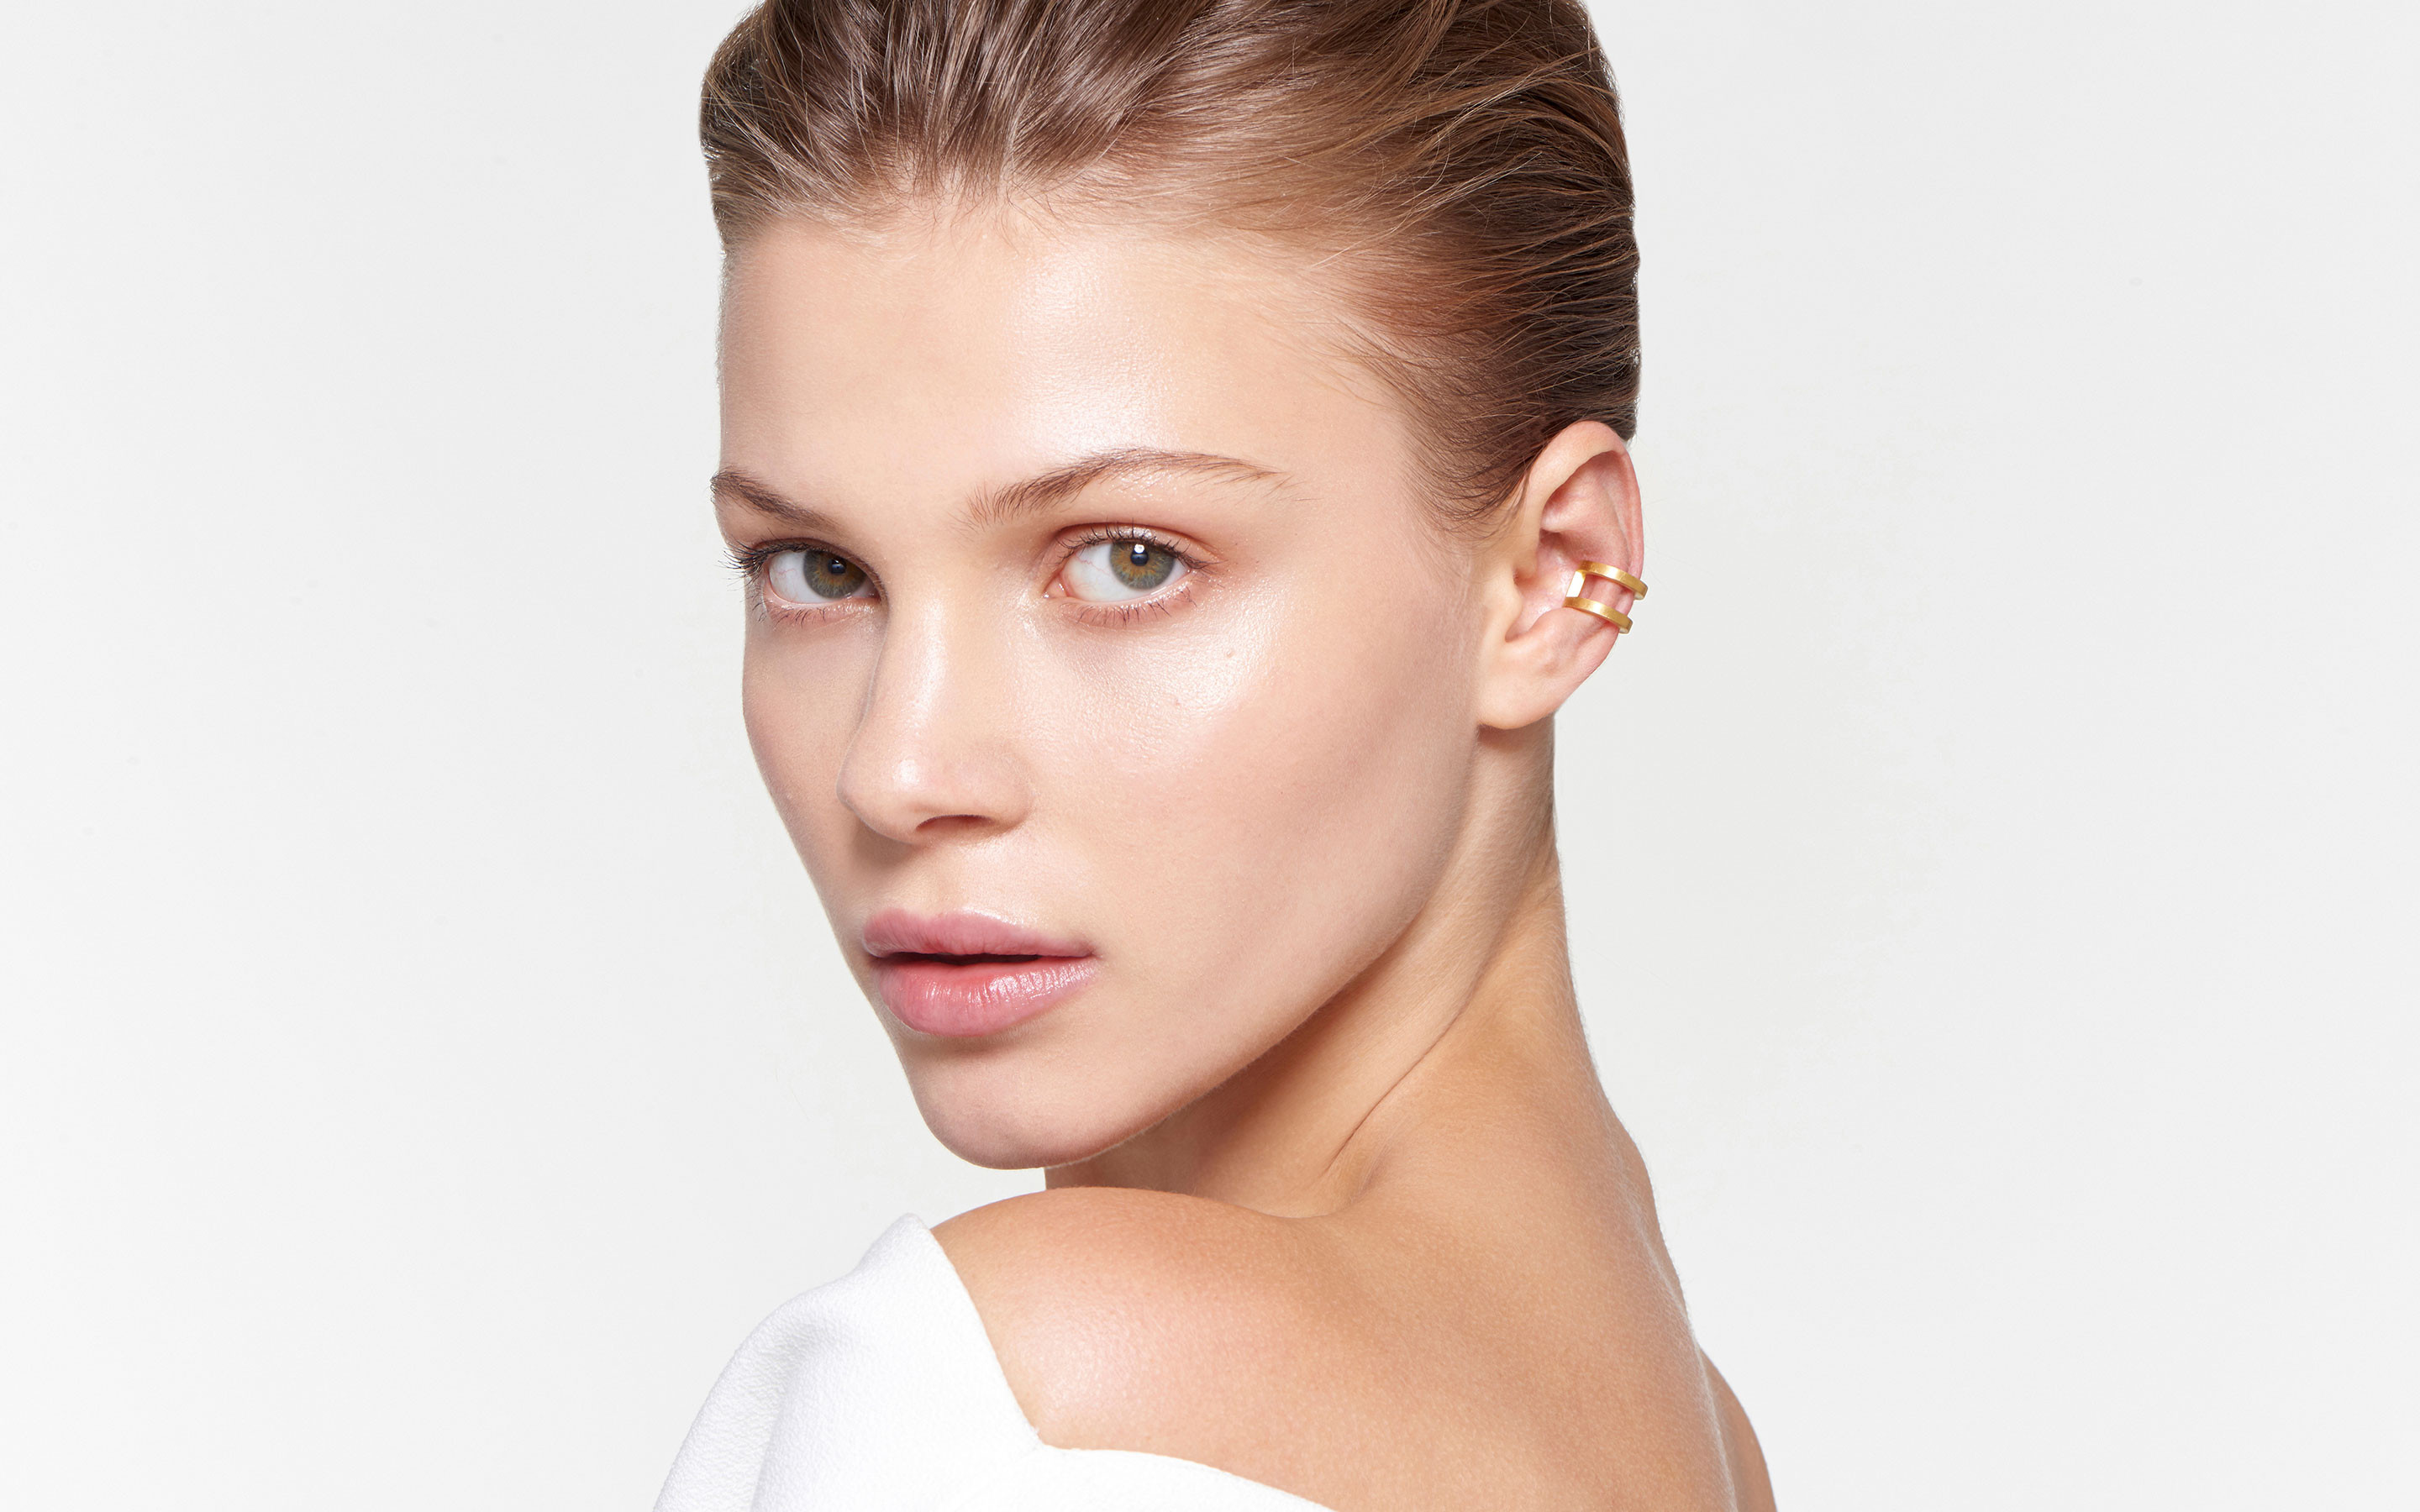 elegant female model wearing stylish 22 karat gold ear cuffs in satin finish